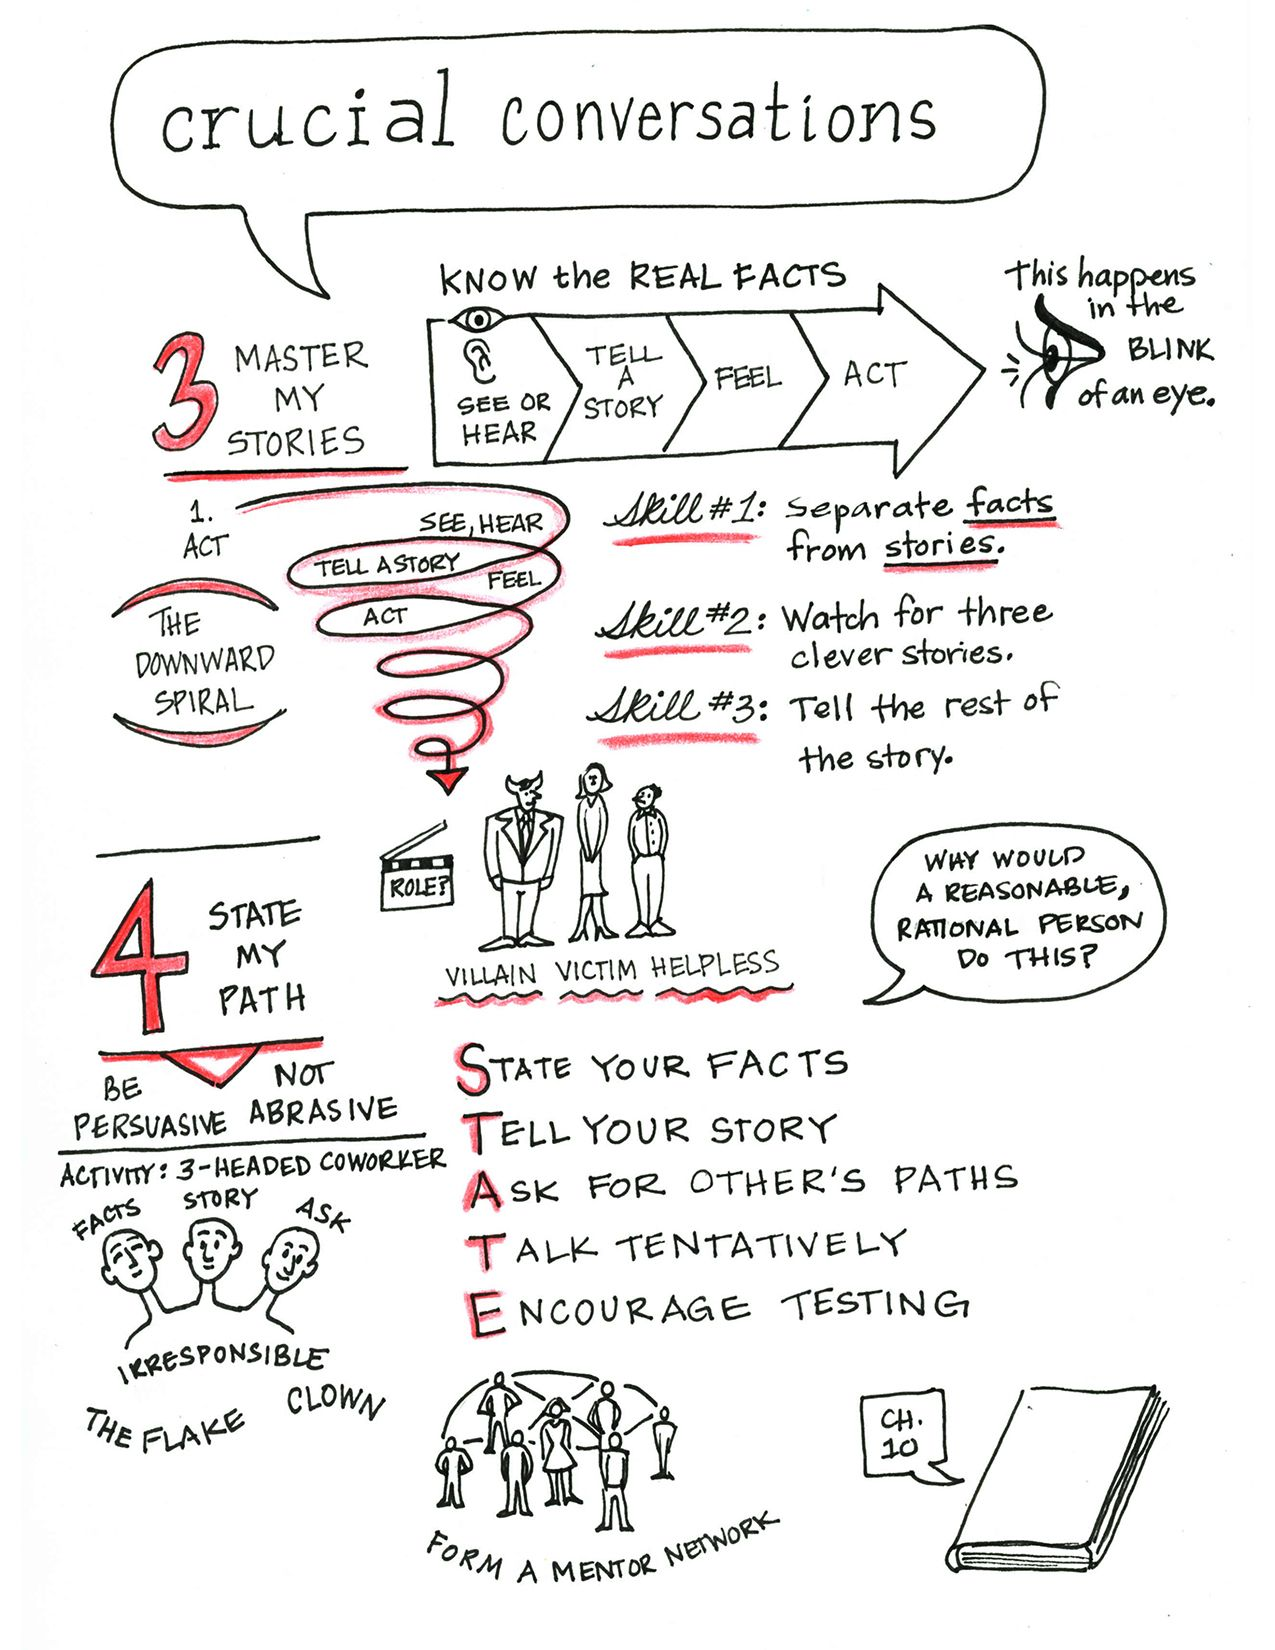 Crucial Conversations Sketchnotes From Vital Smarts Class